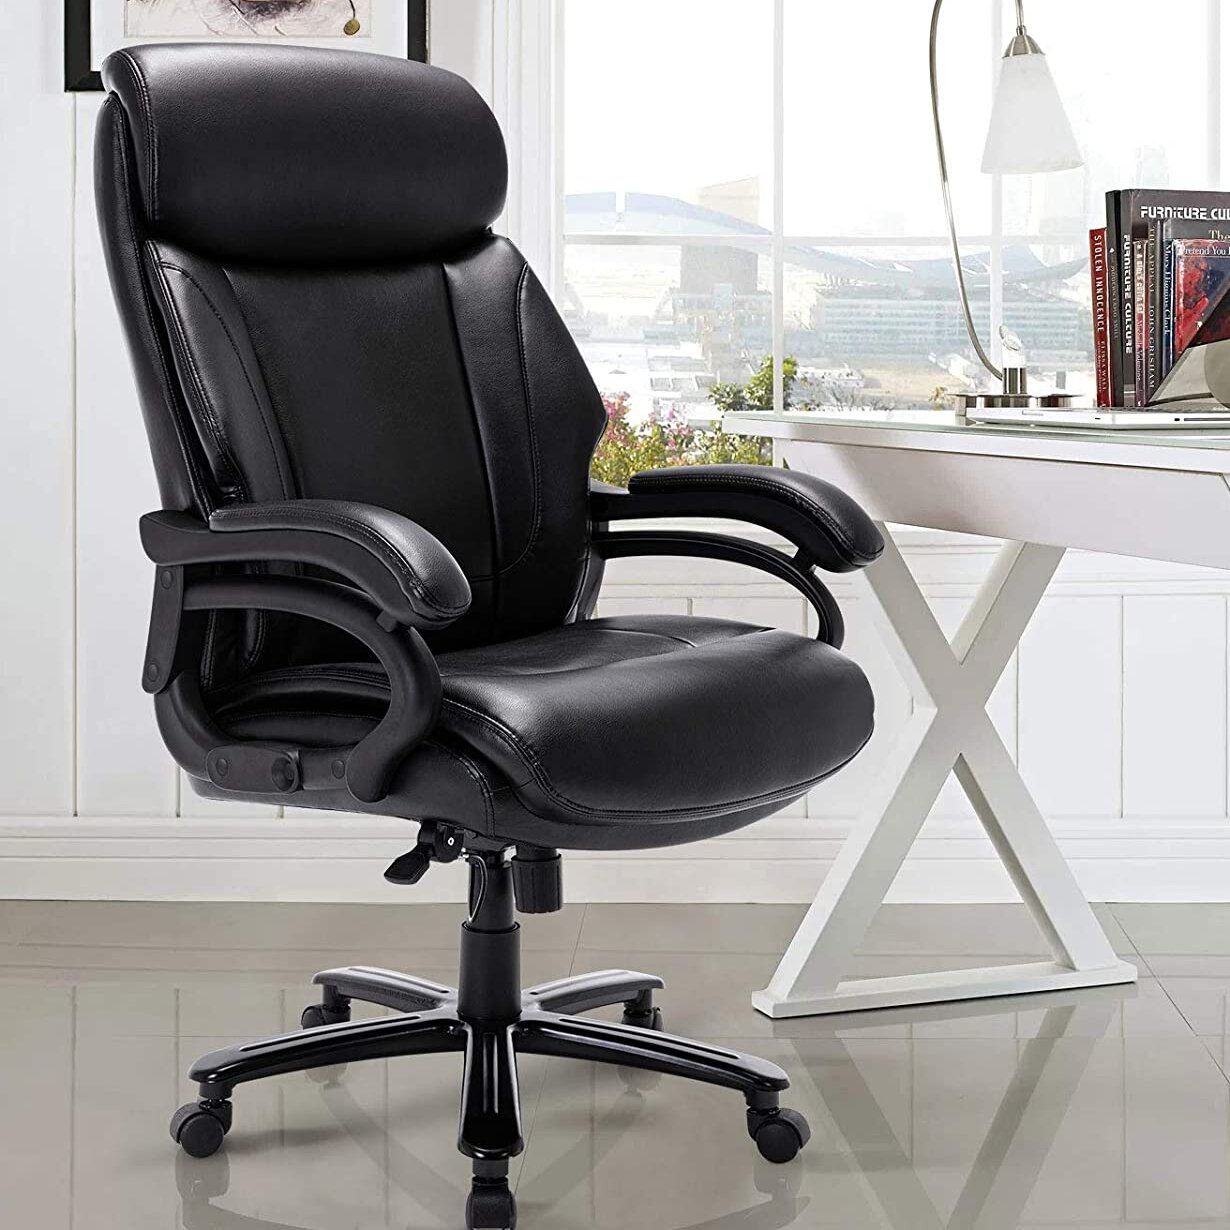 High Back Large And High Size 8 Pounds Bonded Leather Office Chair  Computer Chair, Heavy Metal Base, Adjustable Tilt Angle, Ergonomic Waist  Support